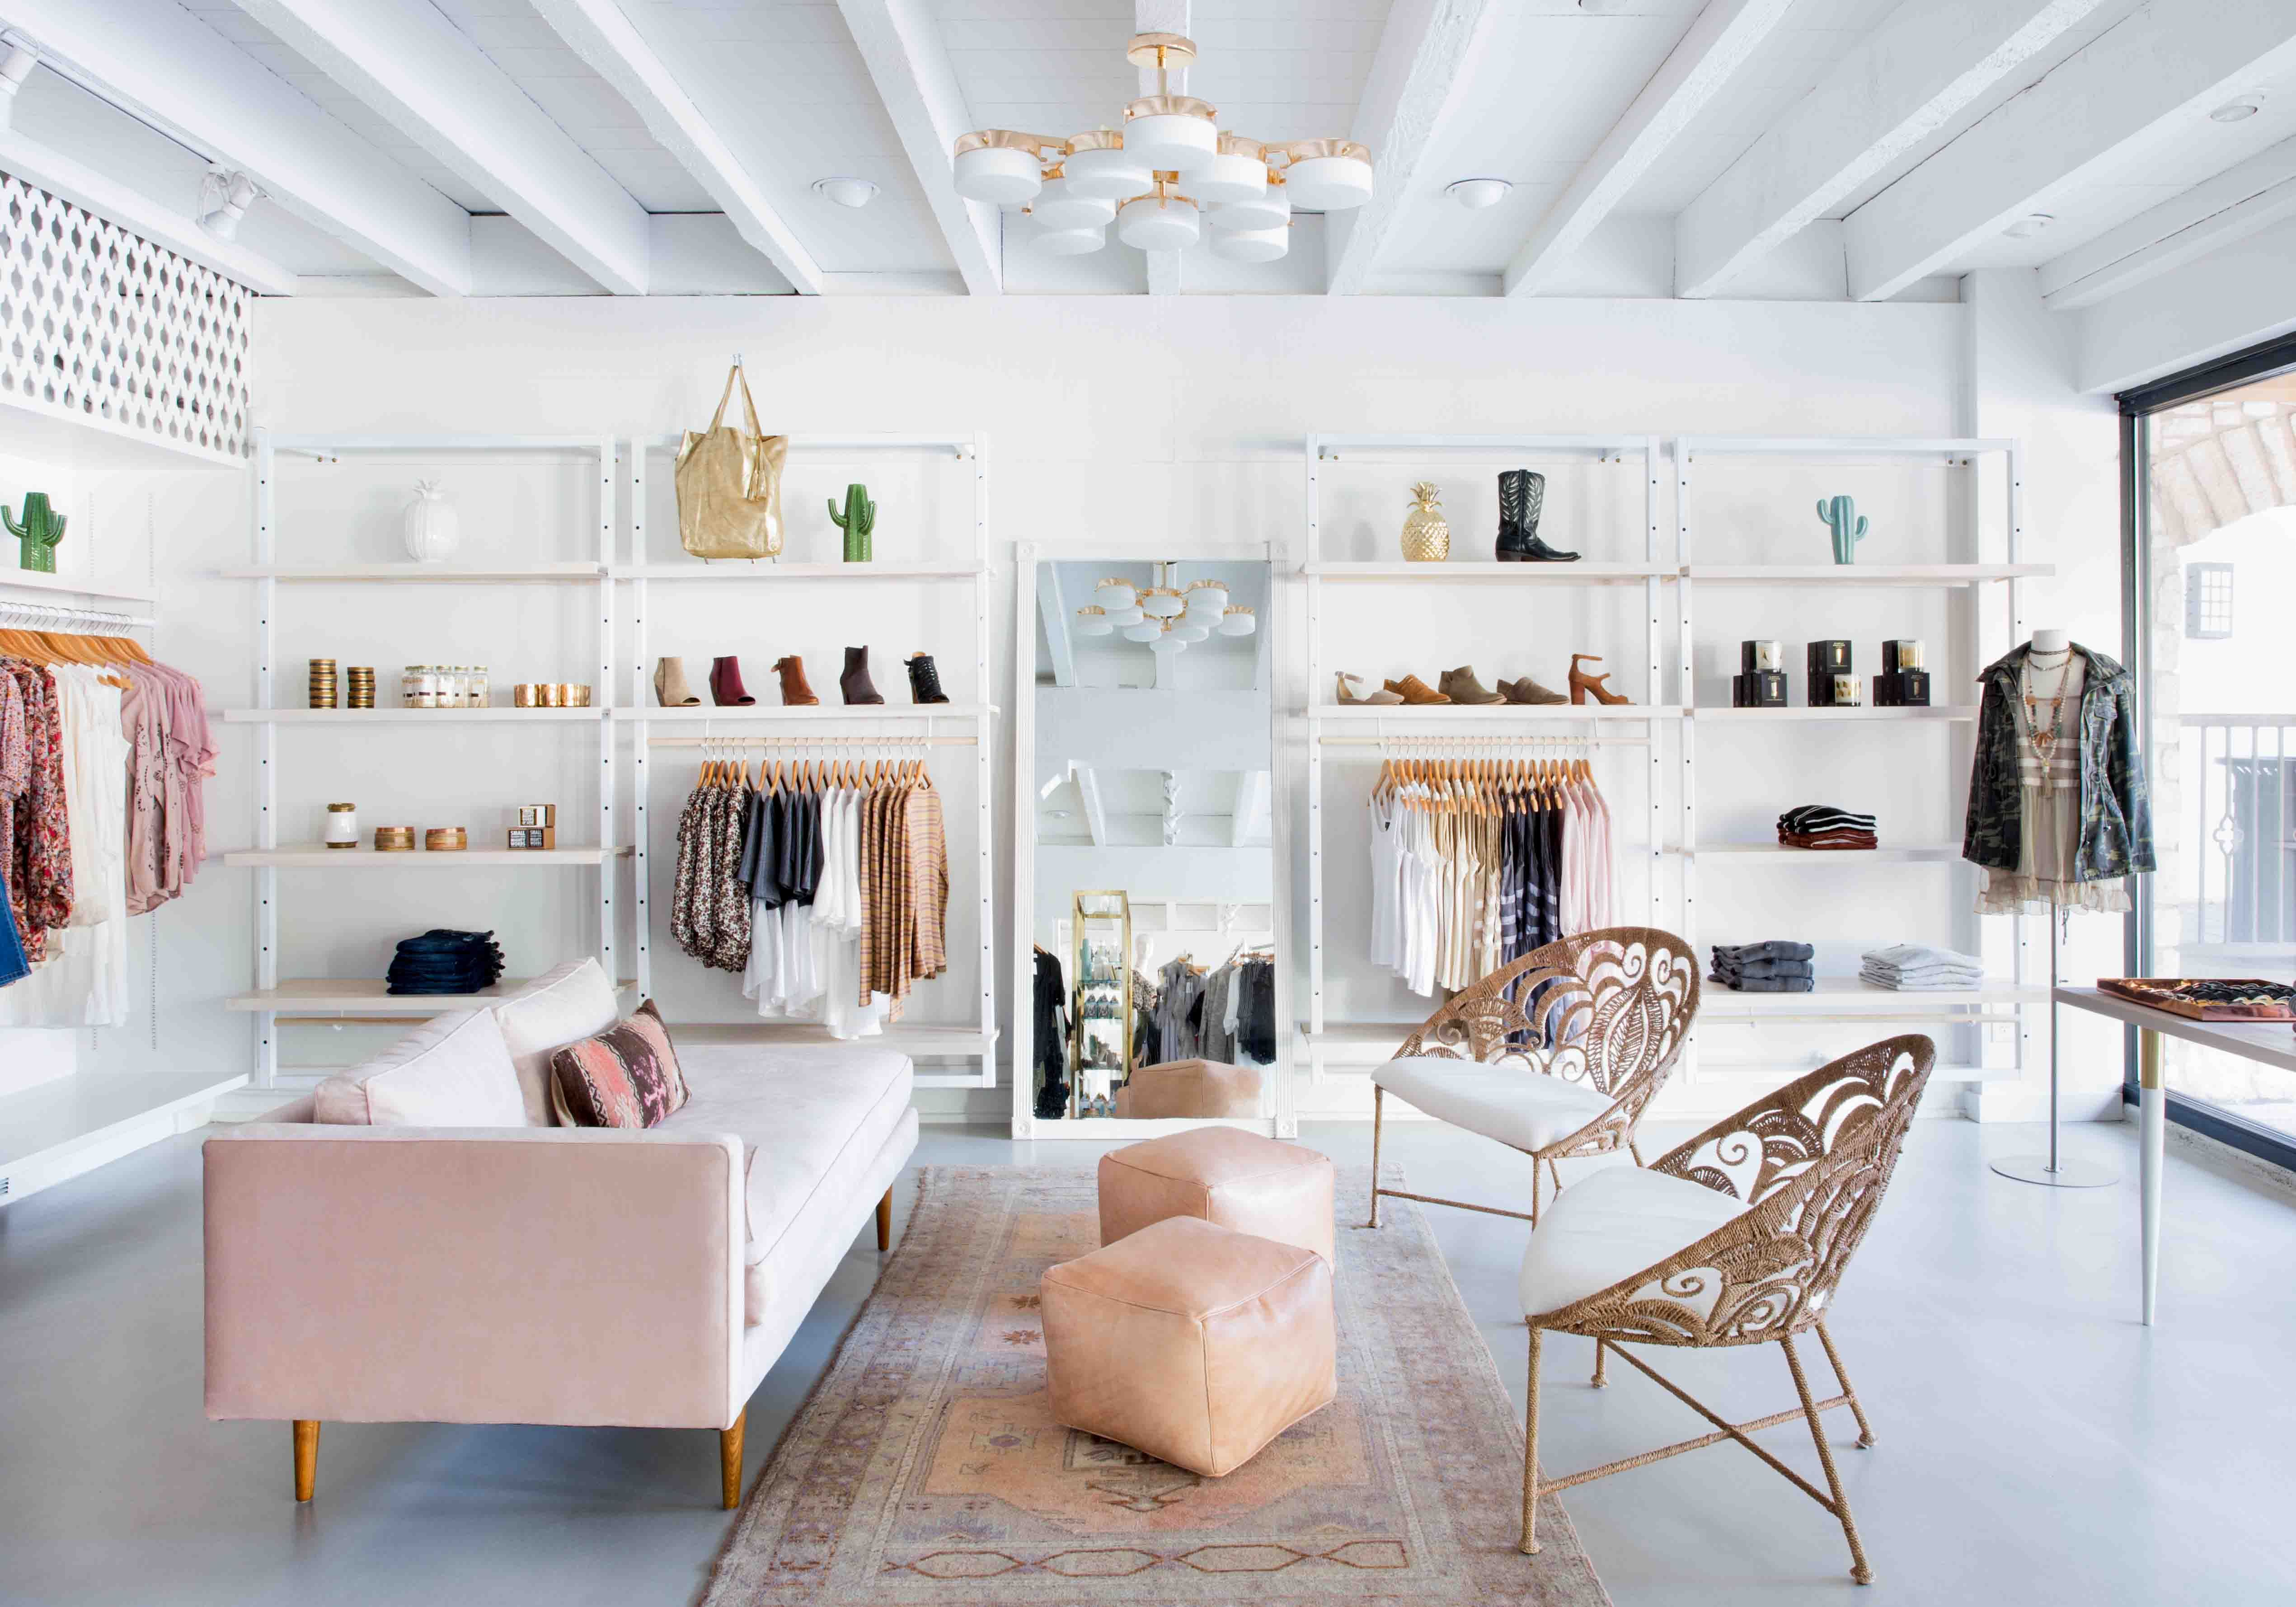 Inside an austin clothing boutique where fashion rules wp board